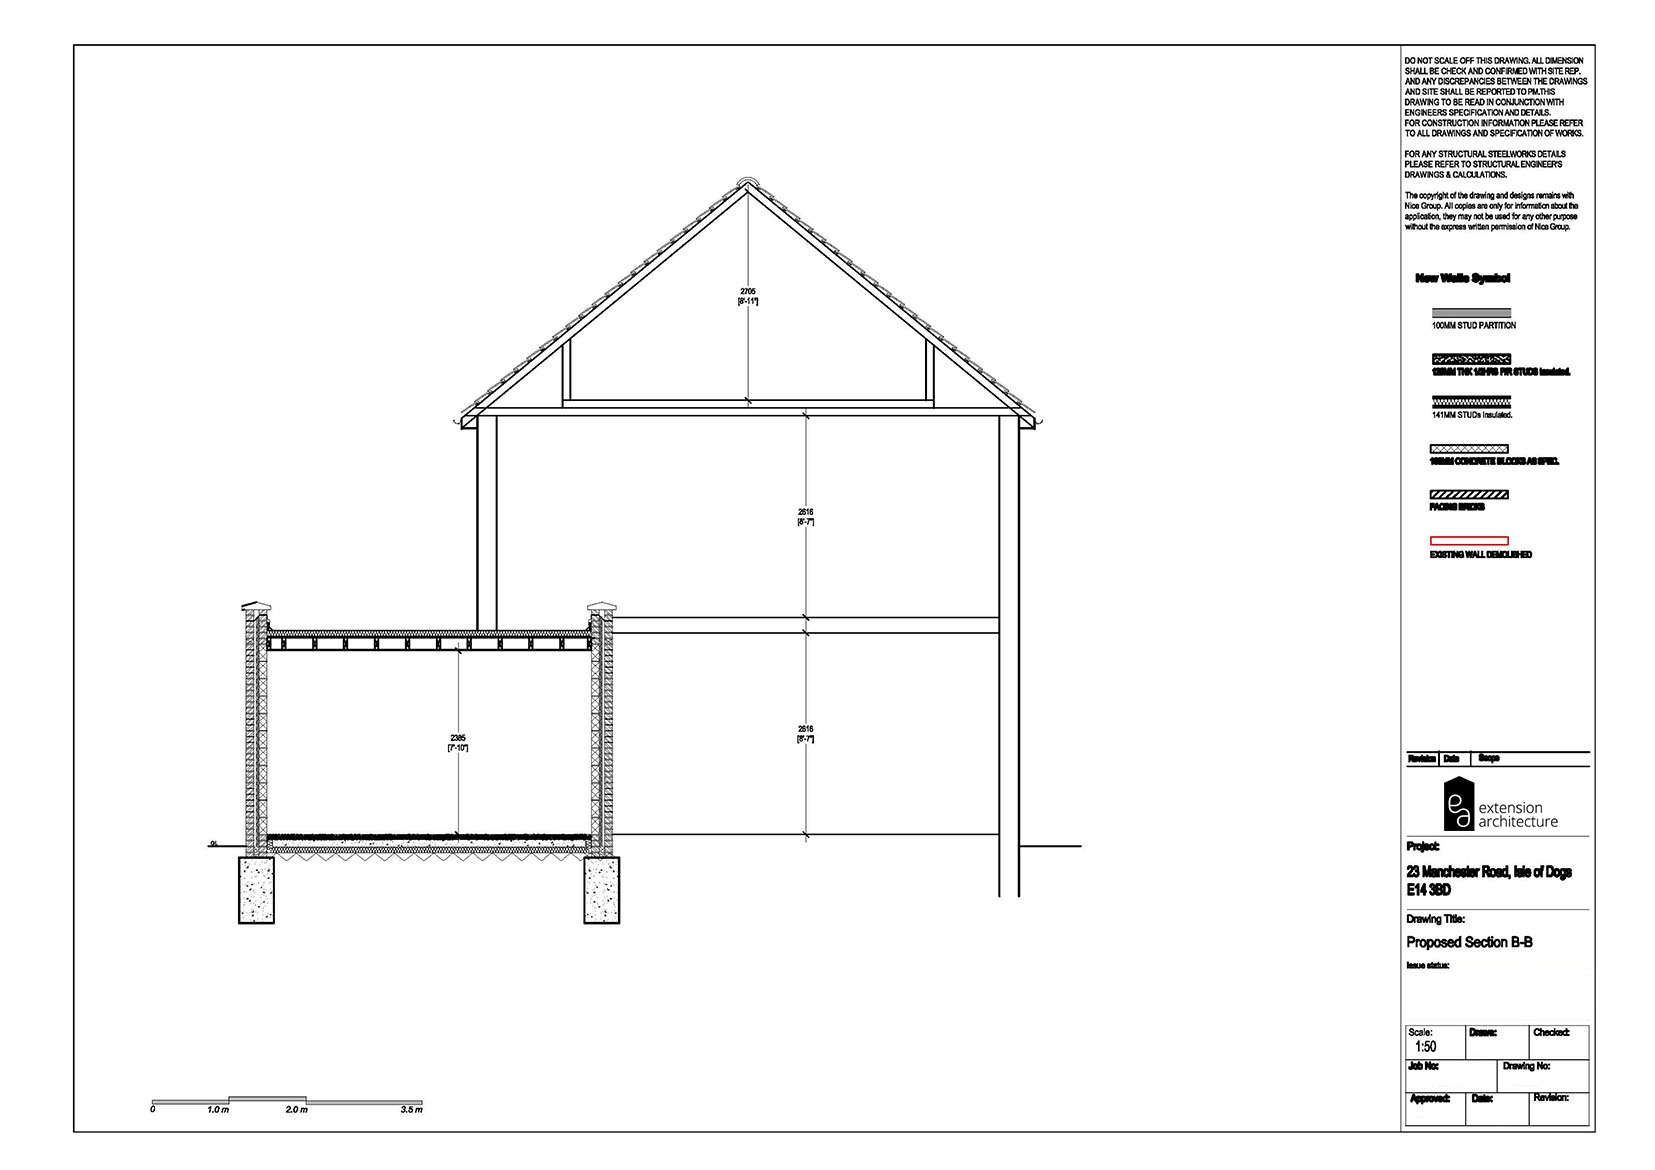 RESIDENTIAL 23MR proposed_convert to flats…page 05